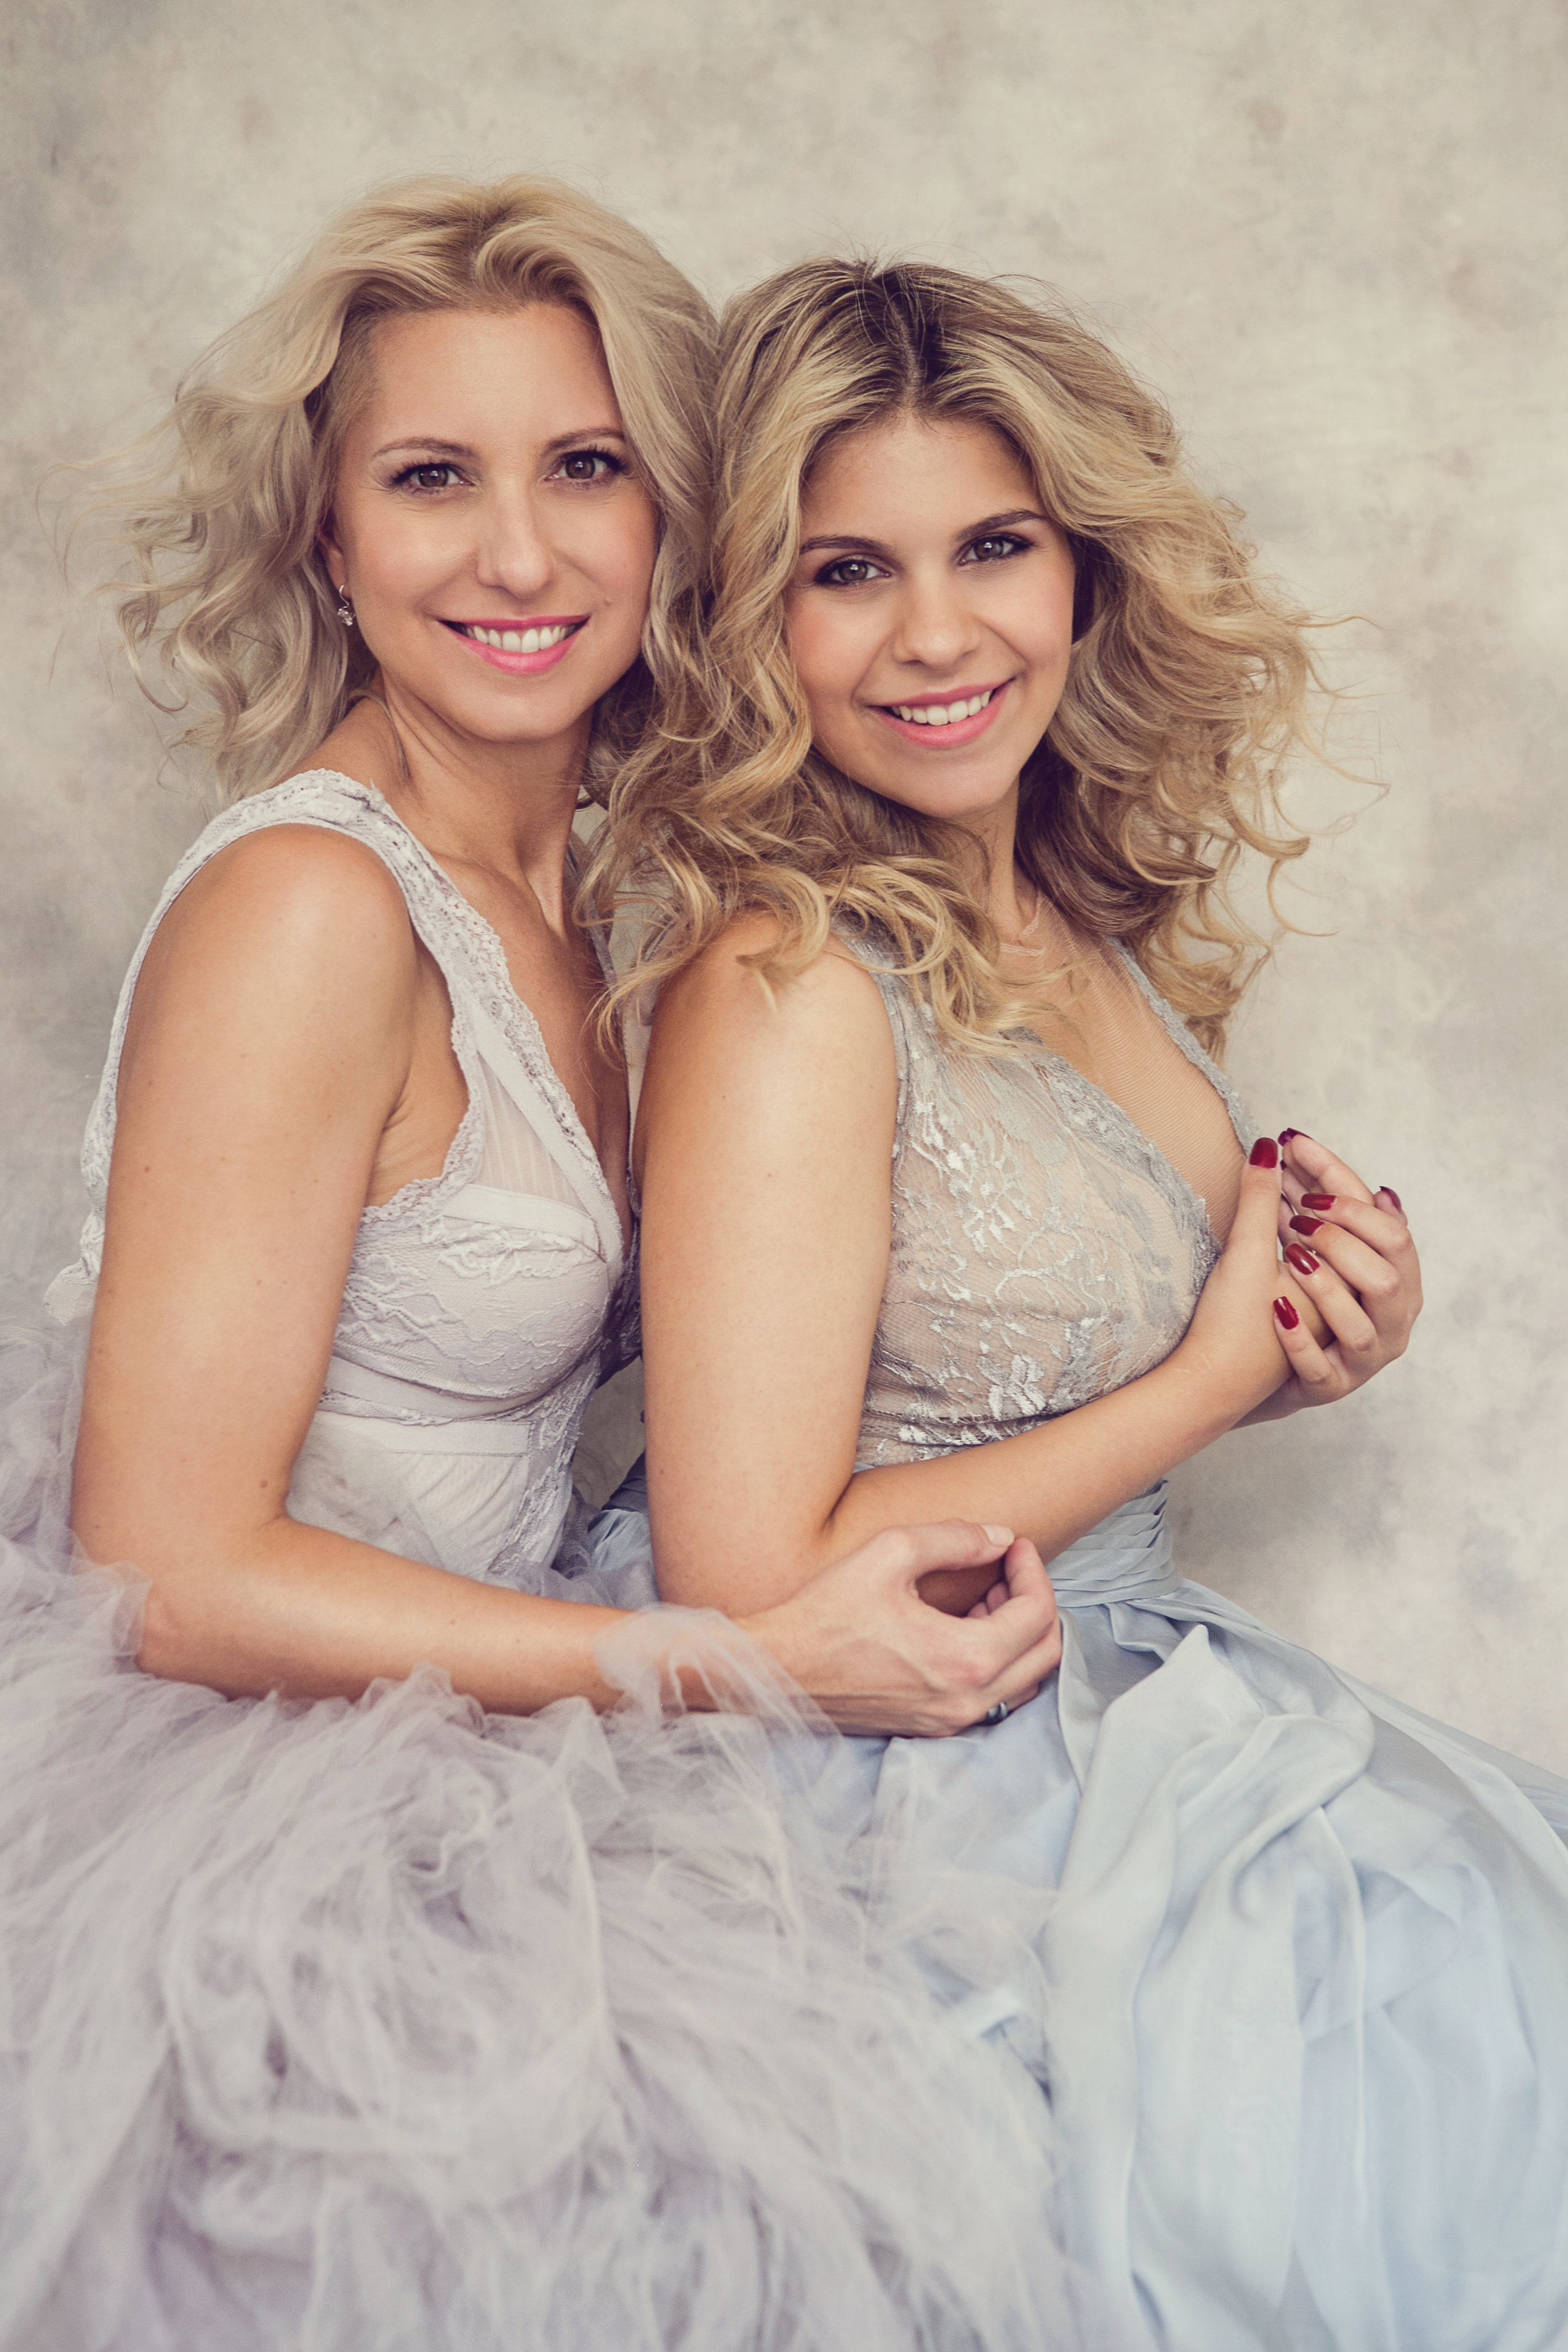 Mother & daughter photo shoot - memories to treasure forever